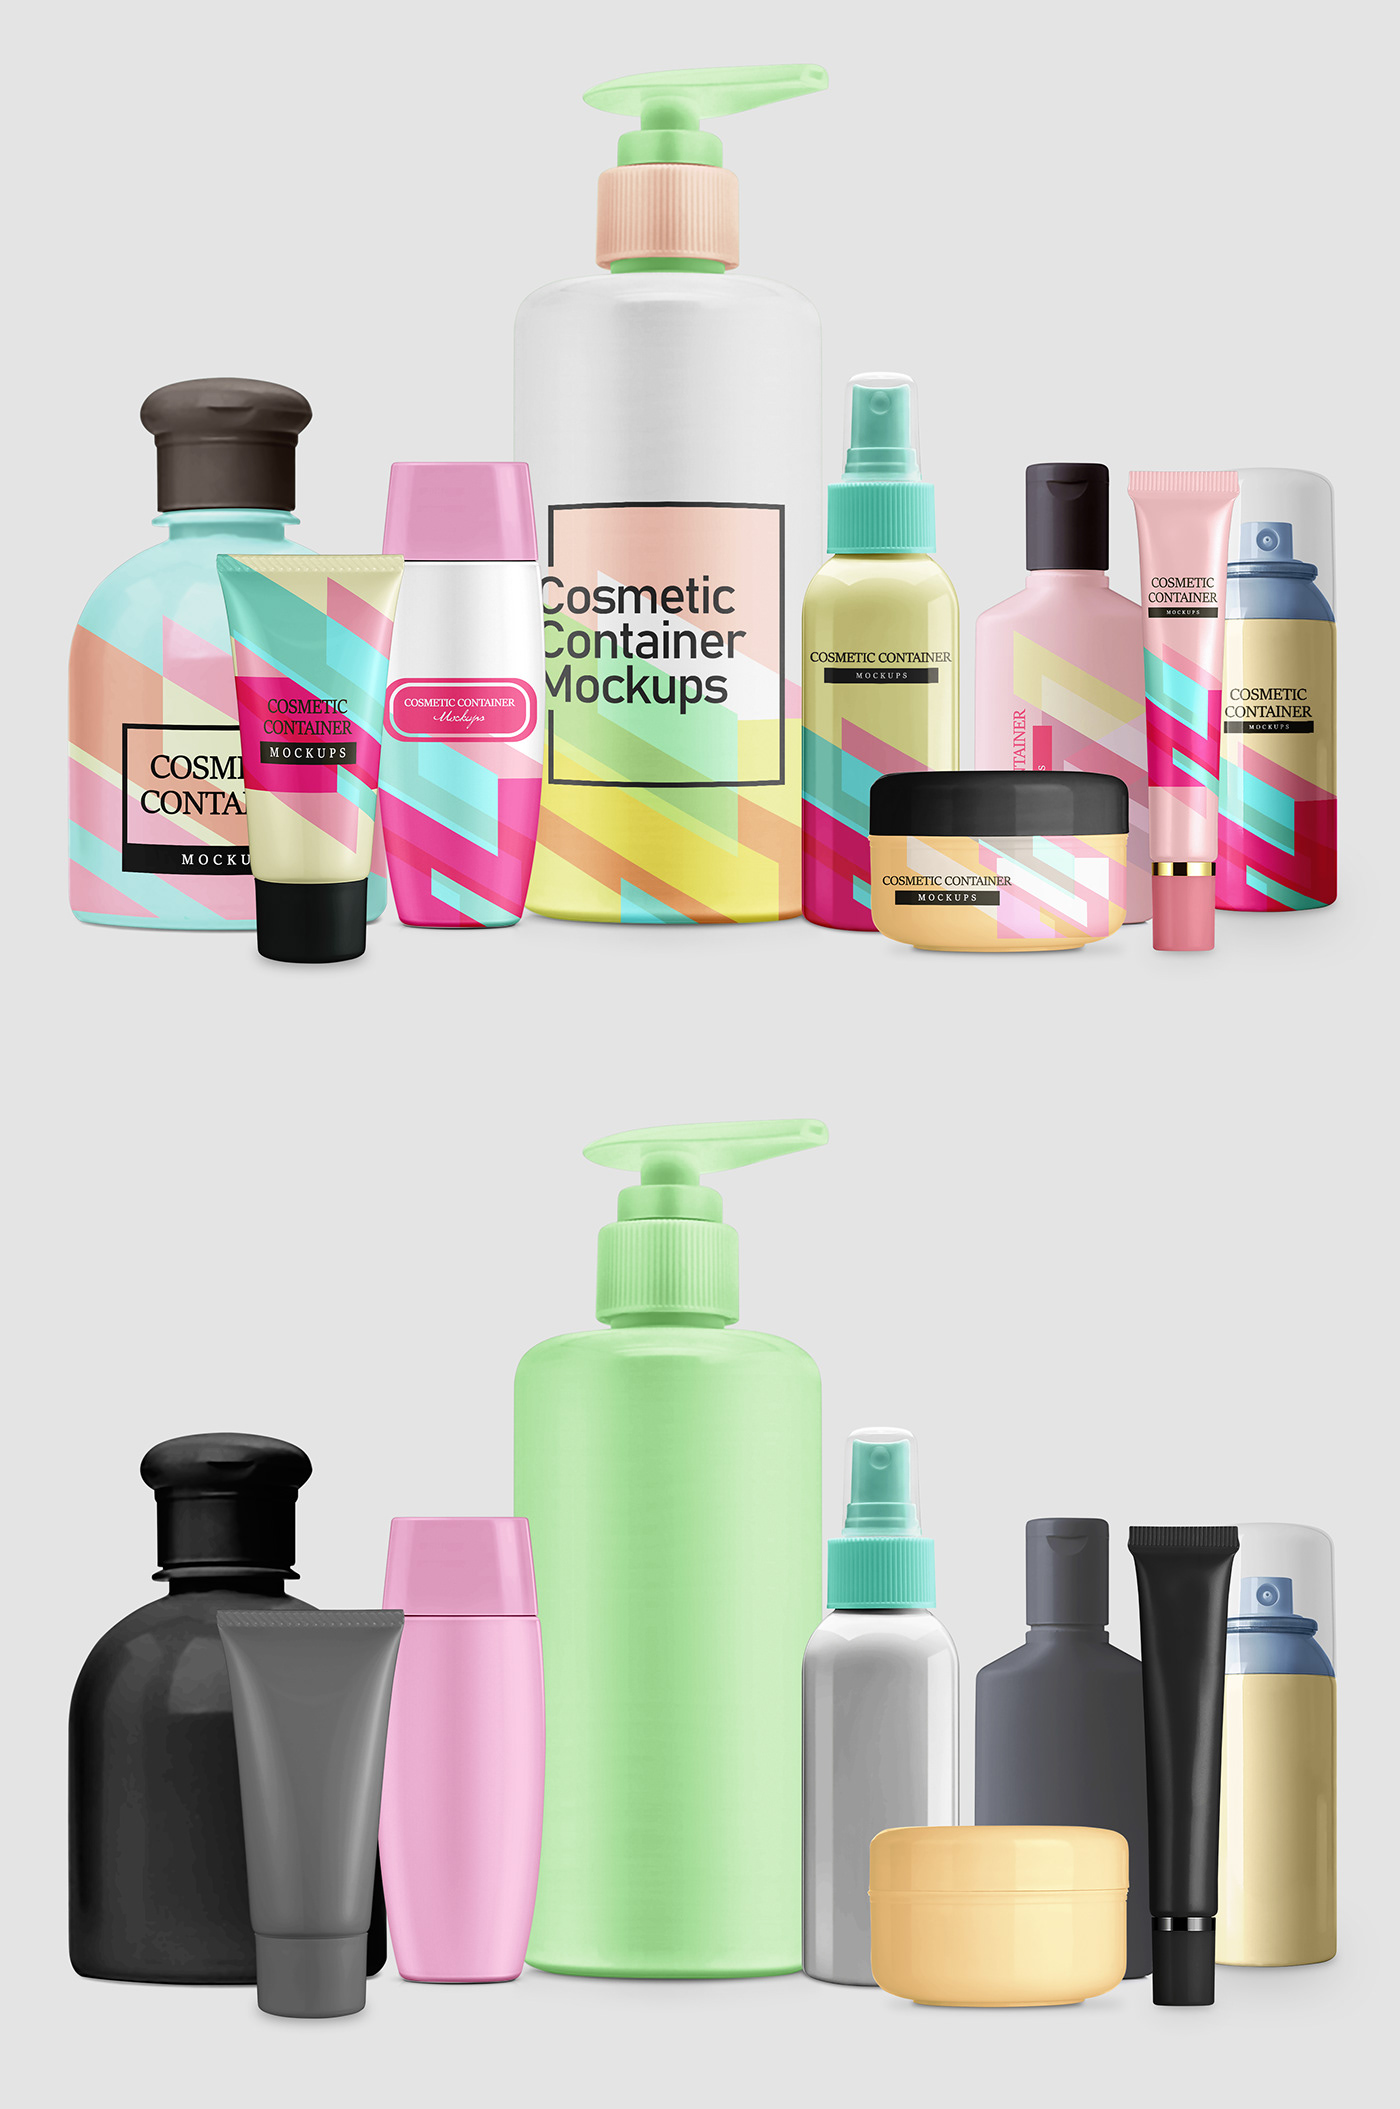 container mockup container mockup pack Cosmetic cosmetic container Mockup cream mockup free container mockup Pack free cosmetic